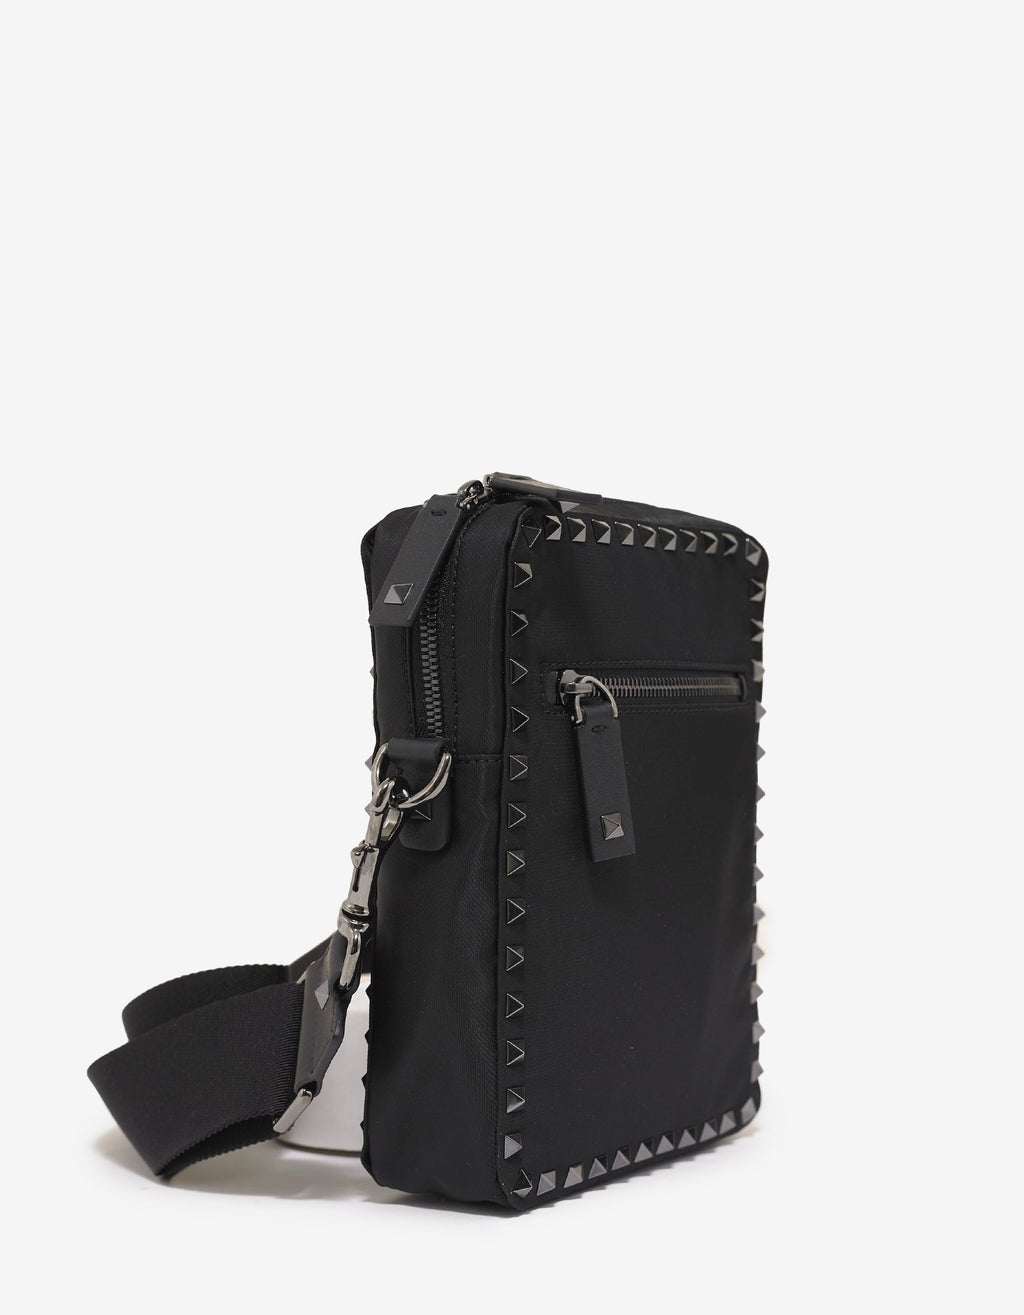 Black Nylon Rockstud Shoulder Bag -